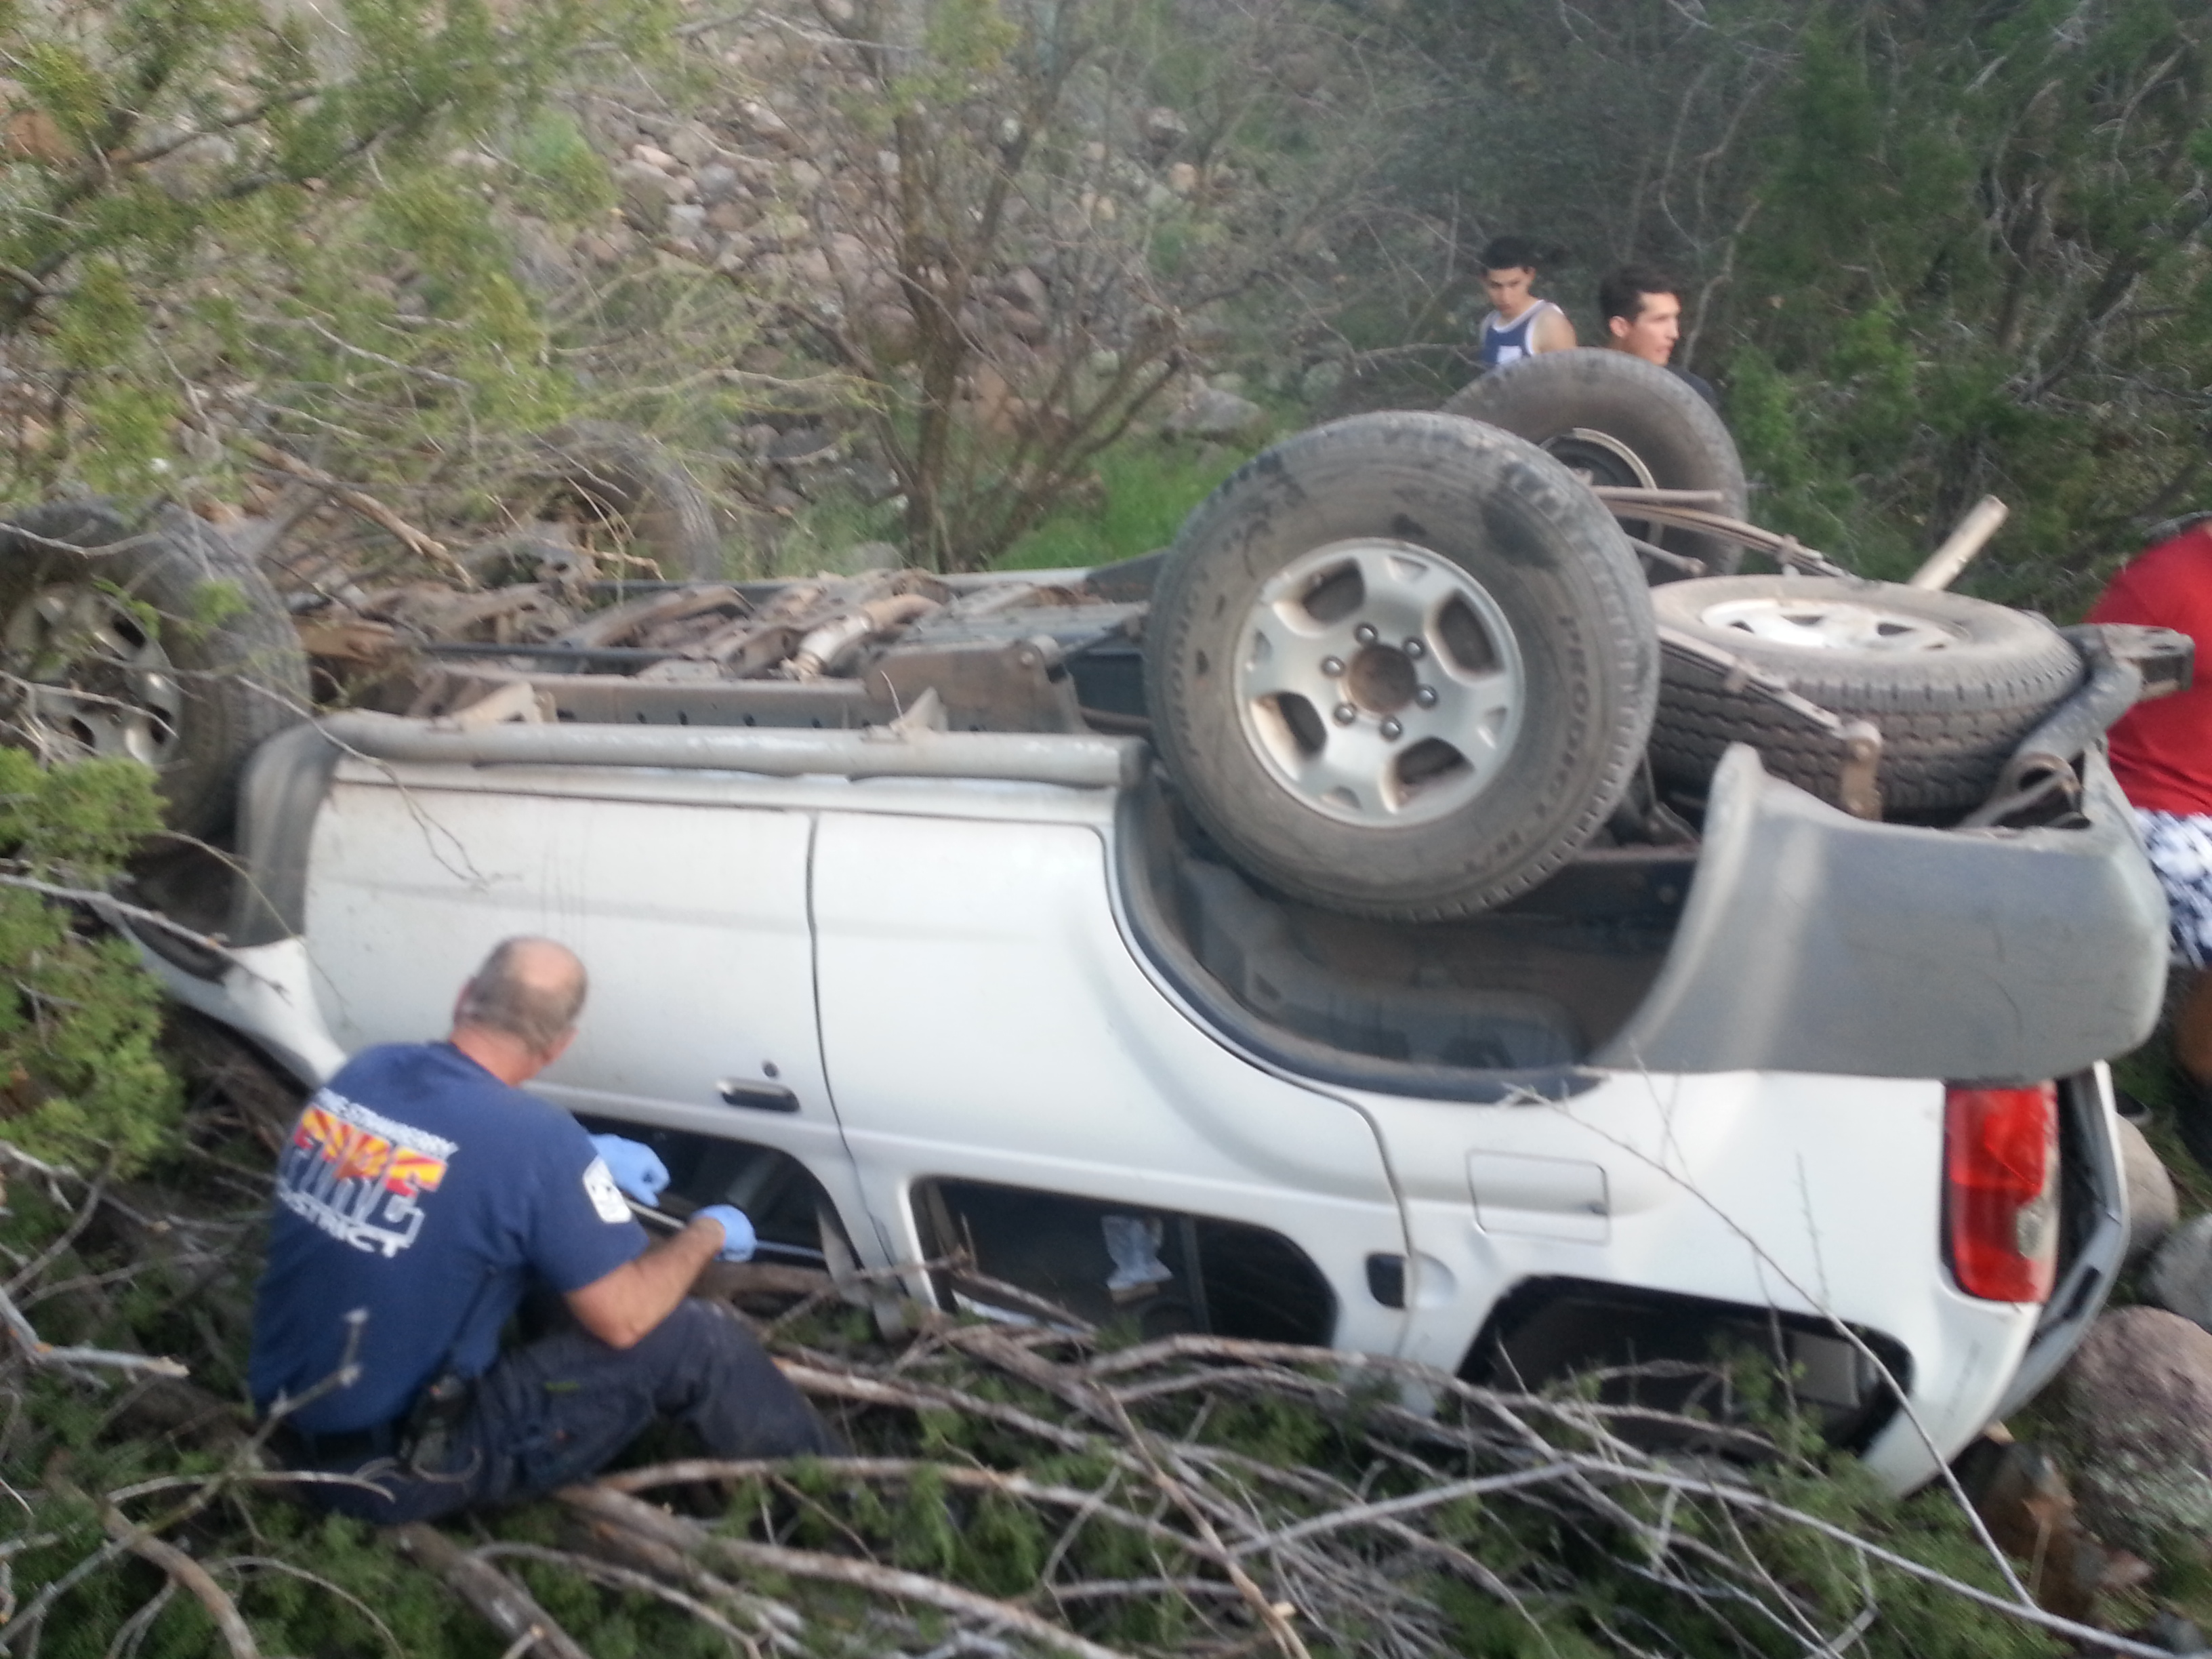 The driver involved in the accident was trapped under the overturned vehicle for approximately four hours until firefighters were able to extricate her on April 1, 2015.